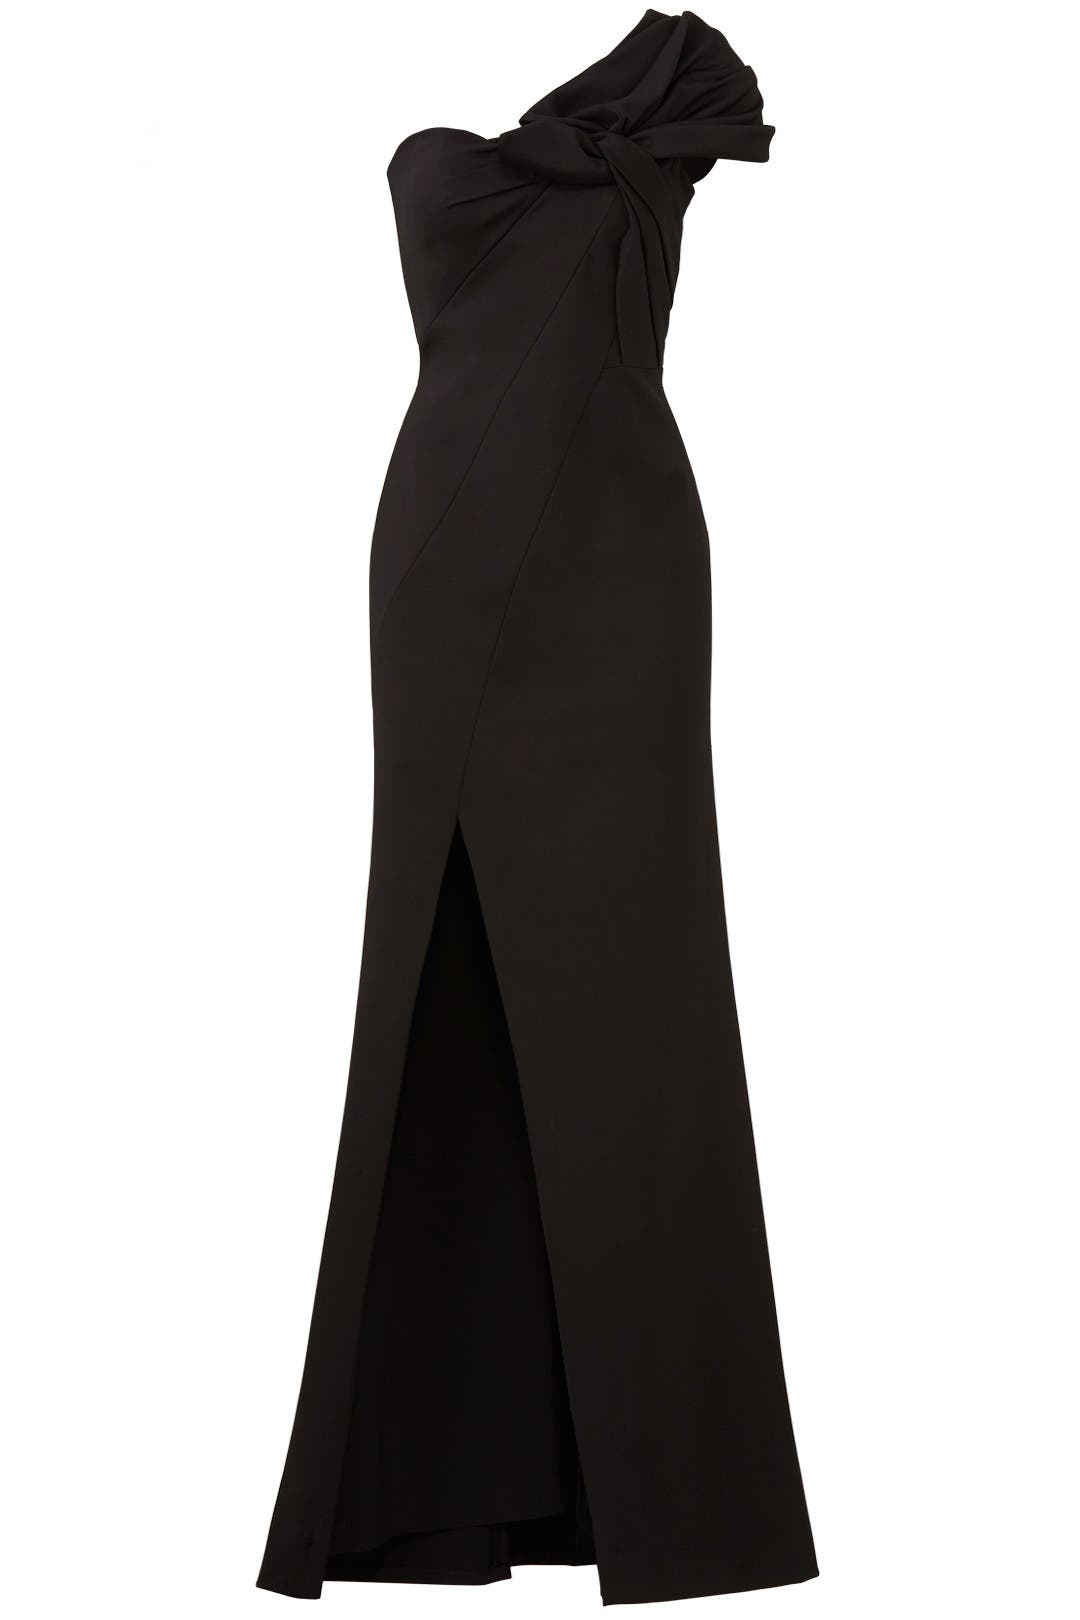 Black Bow Crepe Gown by Aidan Mattox for $70 - $80 | Rent the Runway